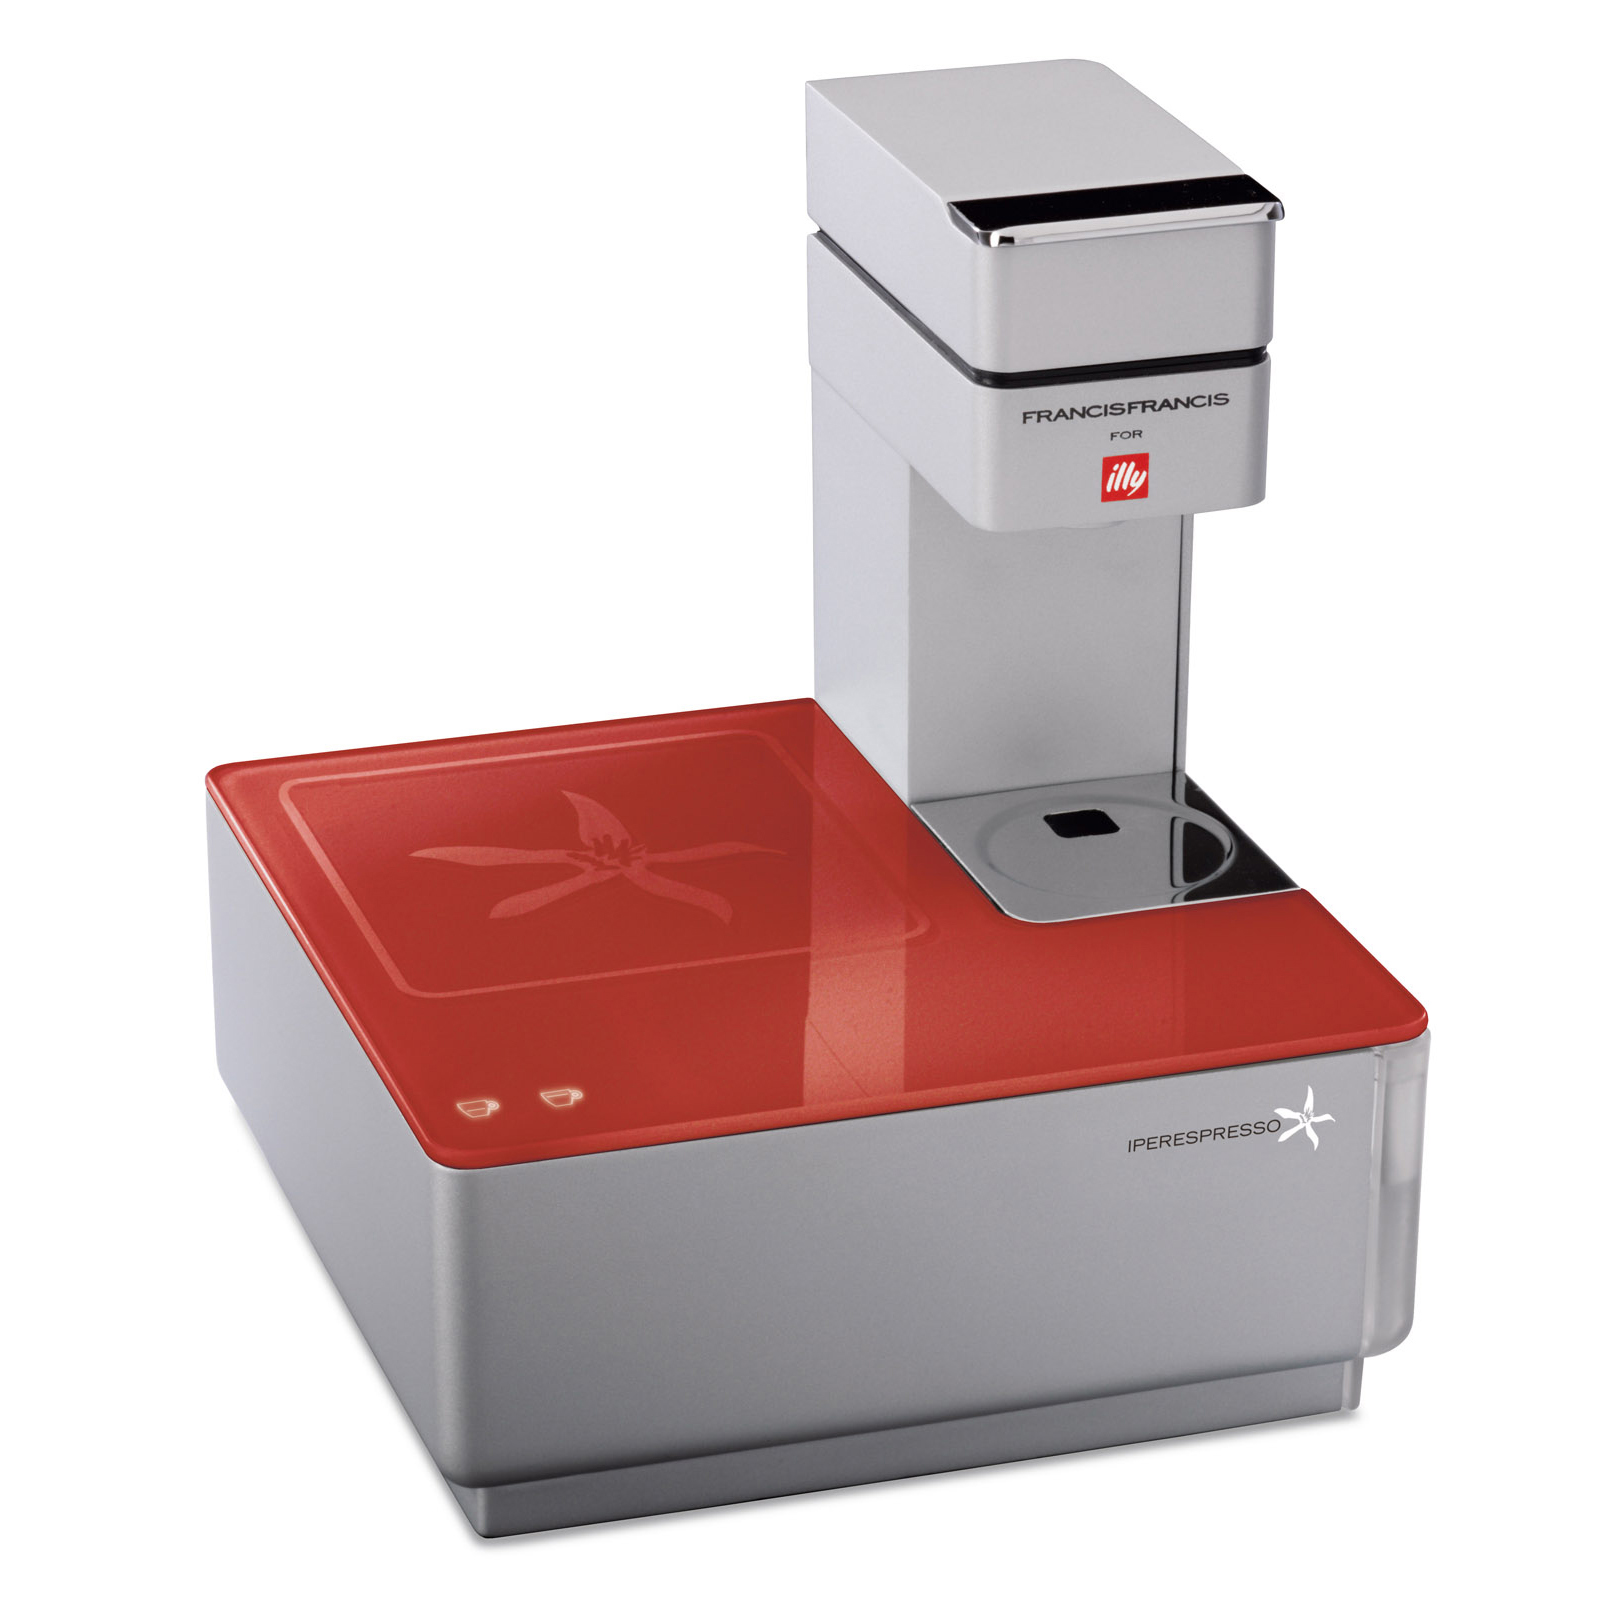 Illy Iperespresso Y1 Espresso Machine - Red